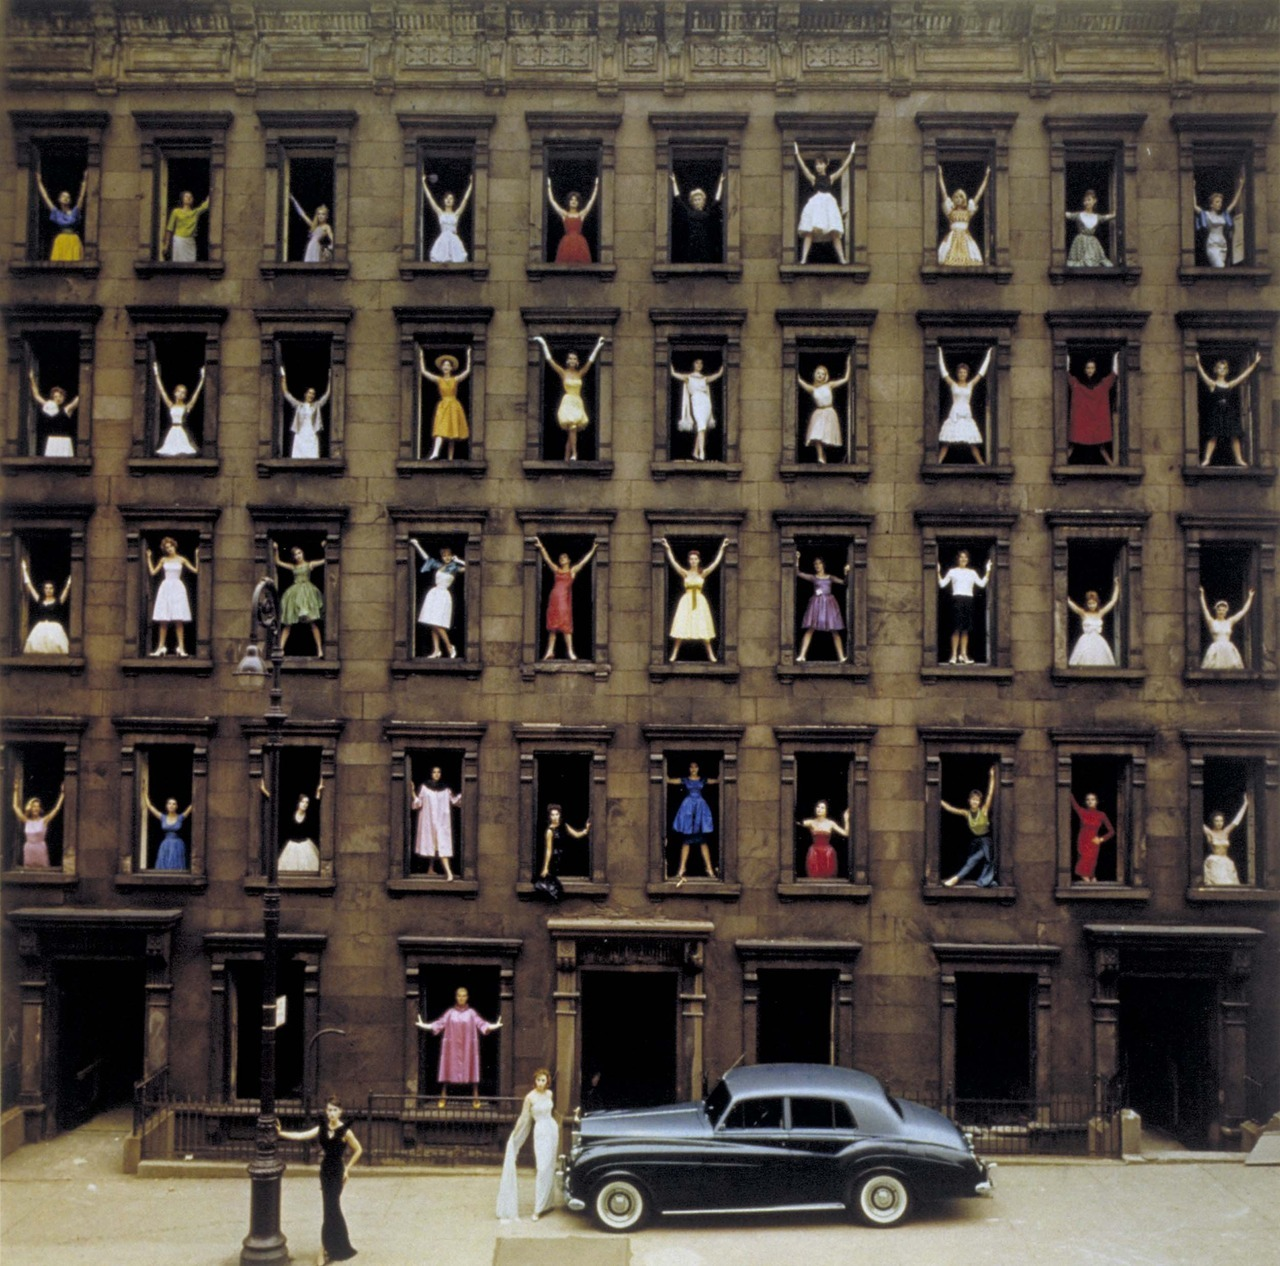 "julimagination:  ""Girls in the Windows""Ormond Gigli1960color photograph  from Ormond Gigli's official site:  In 1960, while a construction crew dismantled a row of brownstones right across from my own brownstone studio on East 58th Street, I was inspired to, somehow immortalize those buildings. I had the vision of 43 women in formal dress adorning the windows of the skeletal facade. We had to work quickly to secure City permissions, arrange for models which included celebrities, the demolition supervisior's wife (third floor, third from left), my own wife (second floor, far right), and also secure the Rolls Royce to be parked on the sidewalk. Careful planning was a necessity as the photography had to be accomplished during the workers' lunch time! The day before the buildings were razed, the 43 women appeared in their finest attire, went into the buildings, climbed the old stairs, and took their places in the windows. I was set up on my fire escape across the streeet, directing the scene, with bullhorn in hand. Of course I was concerned for the Models' safety, as some were daring enough to pose out on the crumbling sills. The photography came off as planned. What had seemed to some as too dangerous or difficult to accomplish, became my fantasy fulfilled, and my most memorable self - assigned photograph. It has been an international award winner ever since. Most professional photographers dream of having one signature picture they are known for. ""GIRLS IN THE WINDOWS "" is mine."